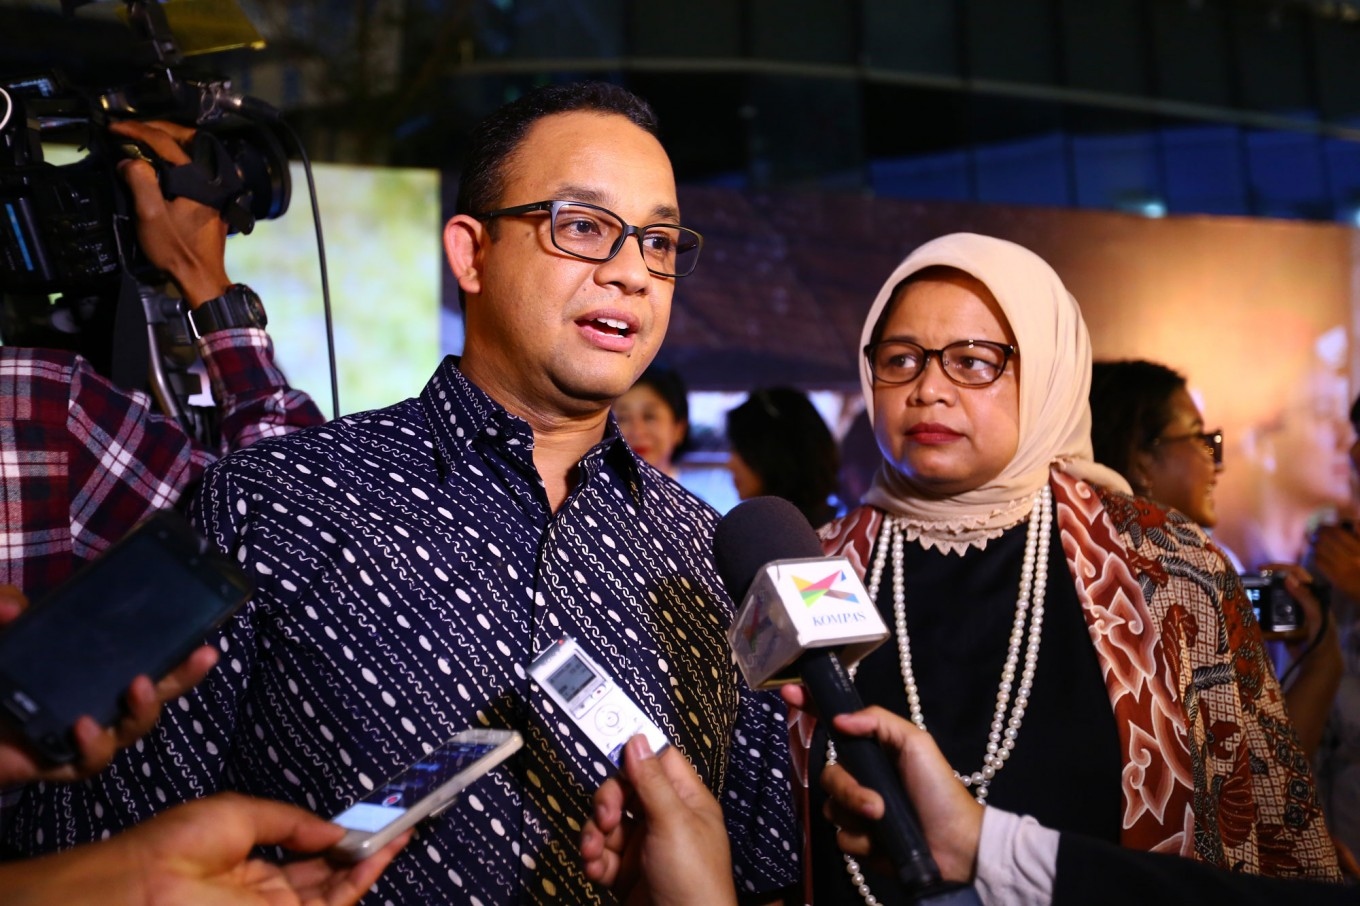 Build more absorption wells in Jagakarsa to avoid floods, Anies says